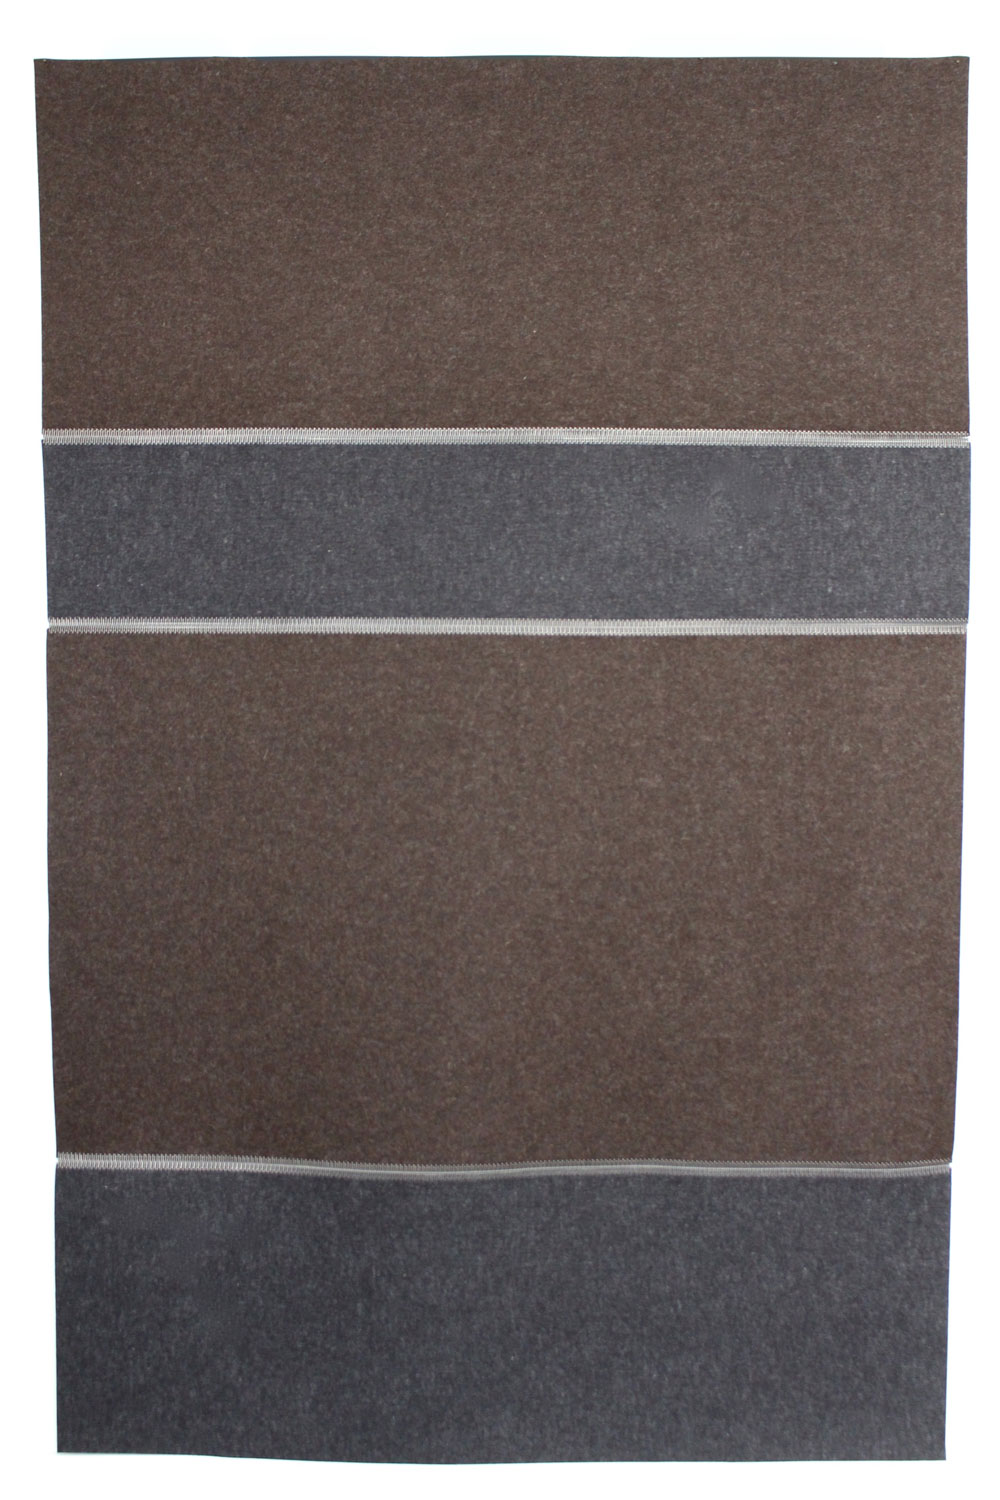 Wool Felt Rug - Anthrazit & Trufflebraun - Click to buy online